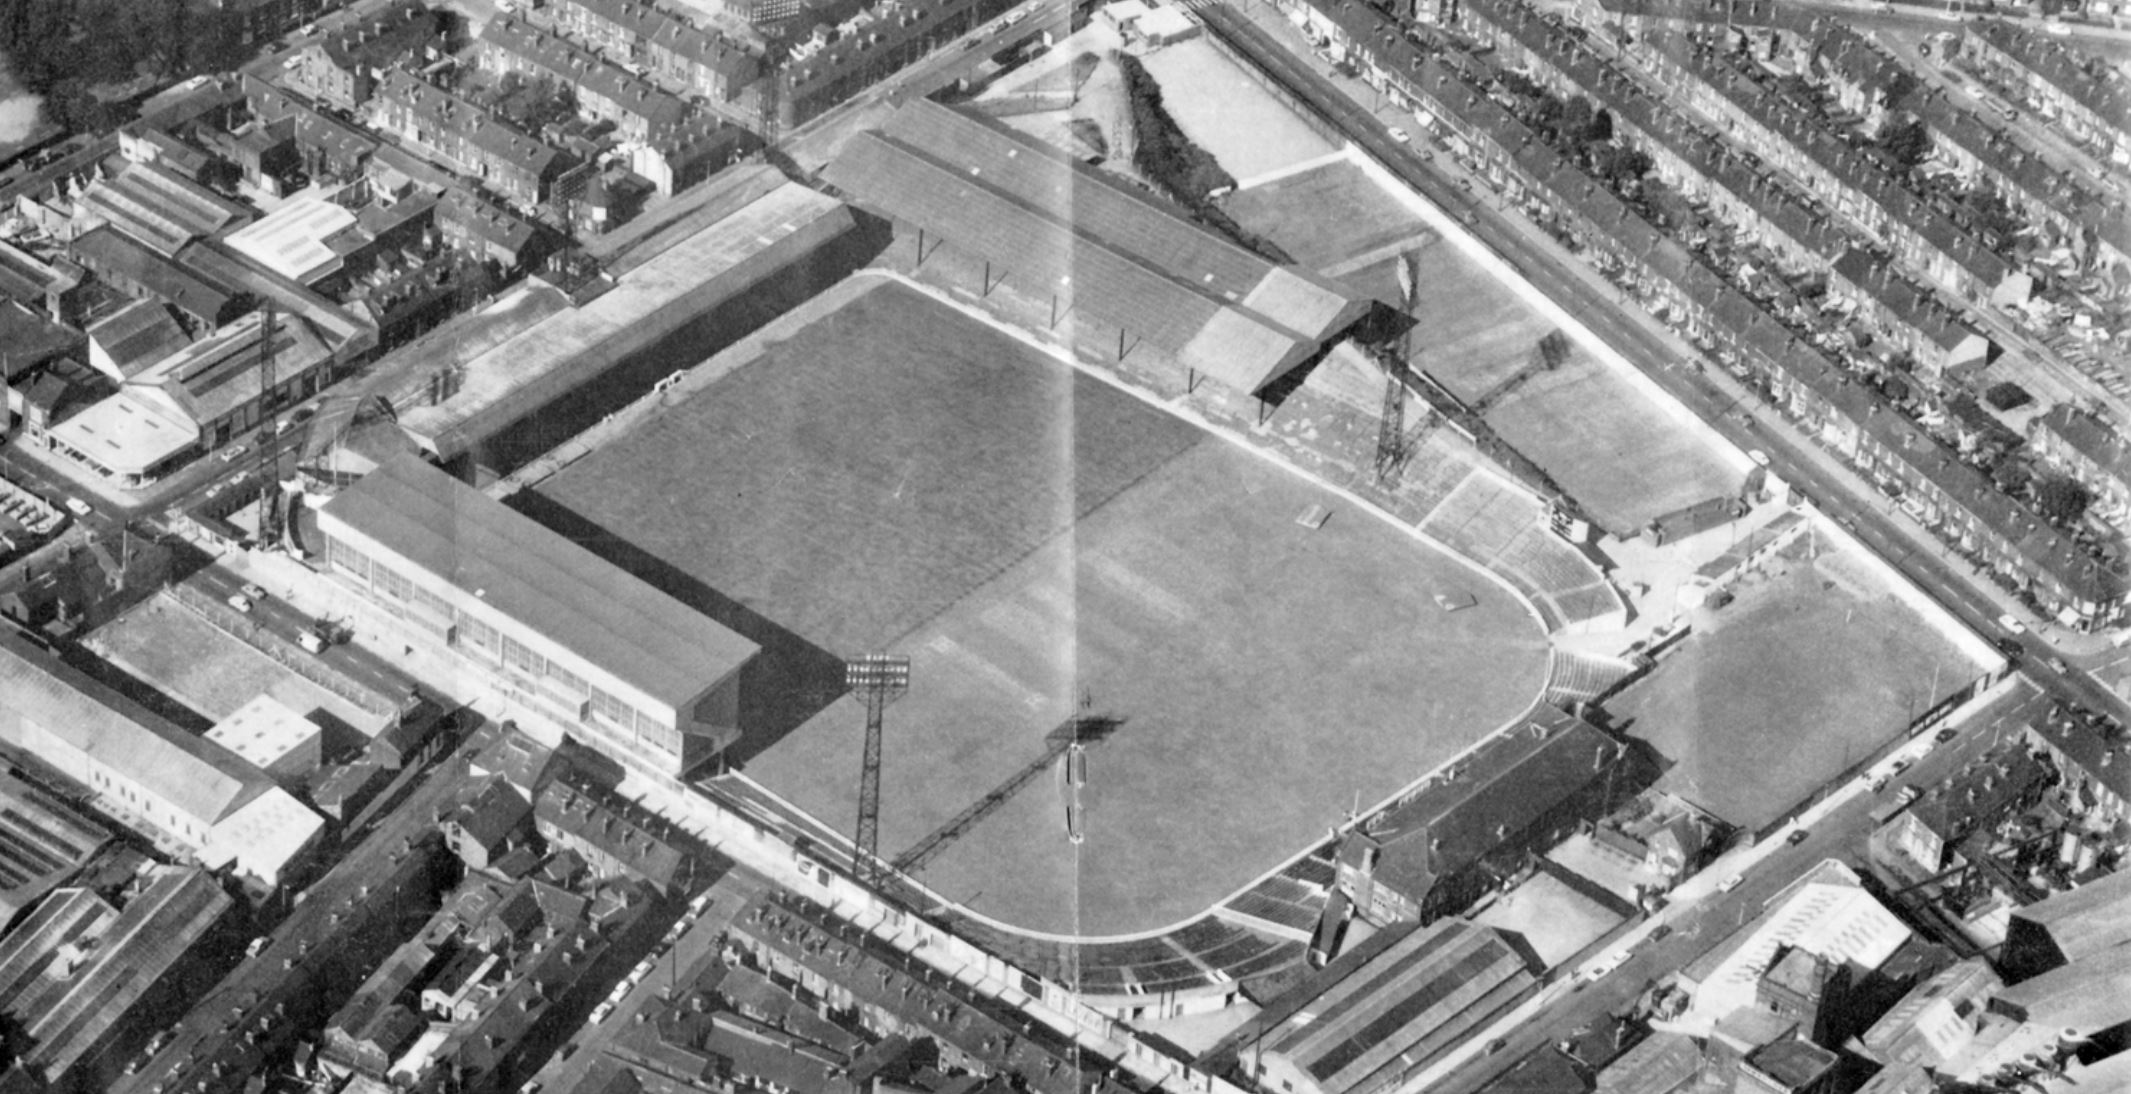 1970s Bramall Lane